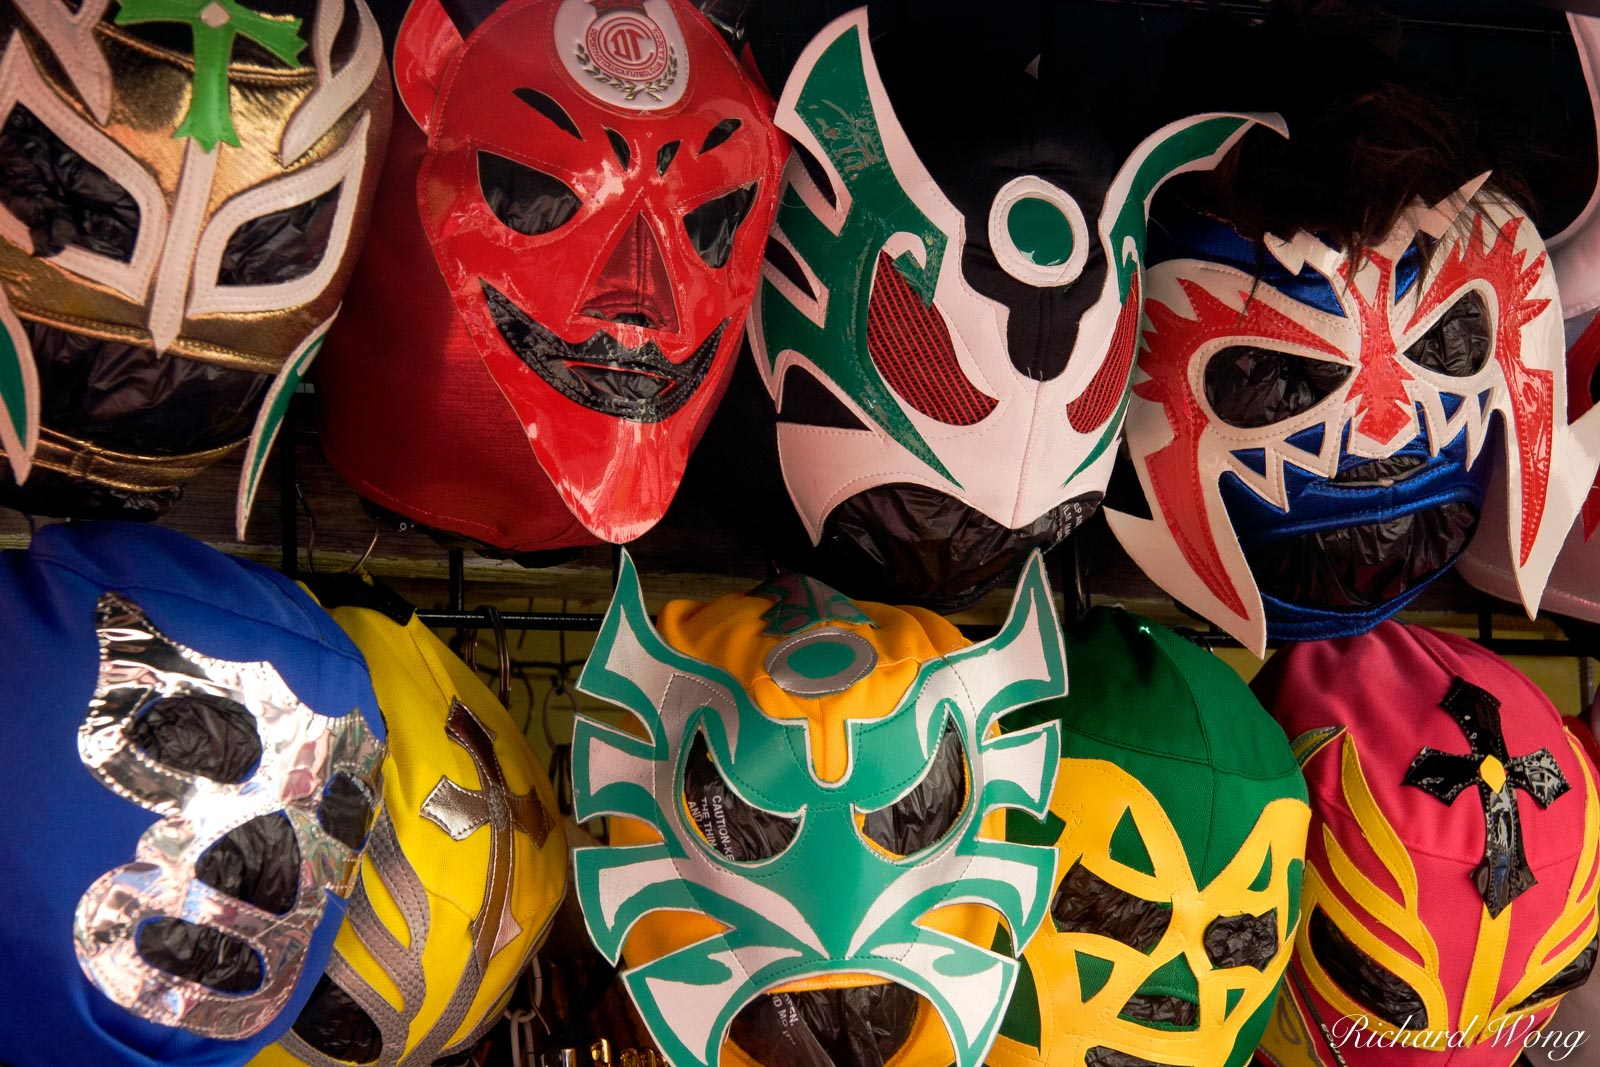 Mexican Luchador Lucha Libre Wrestling Masks at Olvera Street, Los Angeles, California, photo, photo